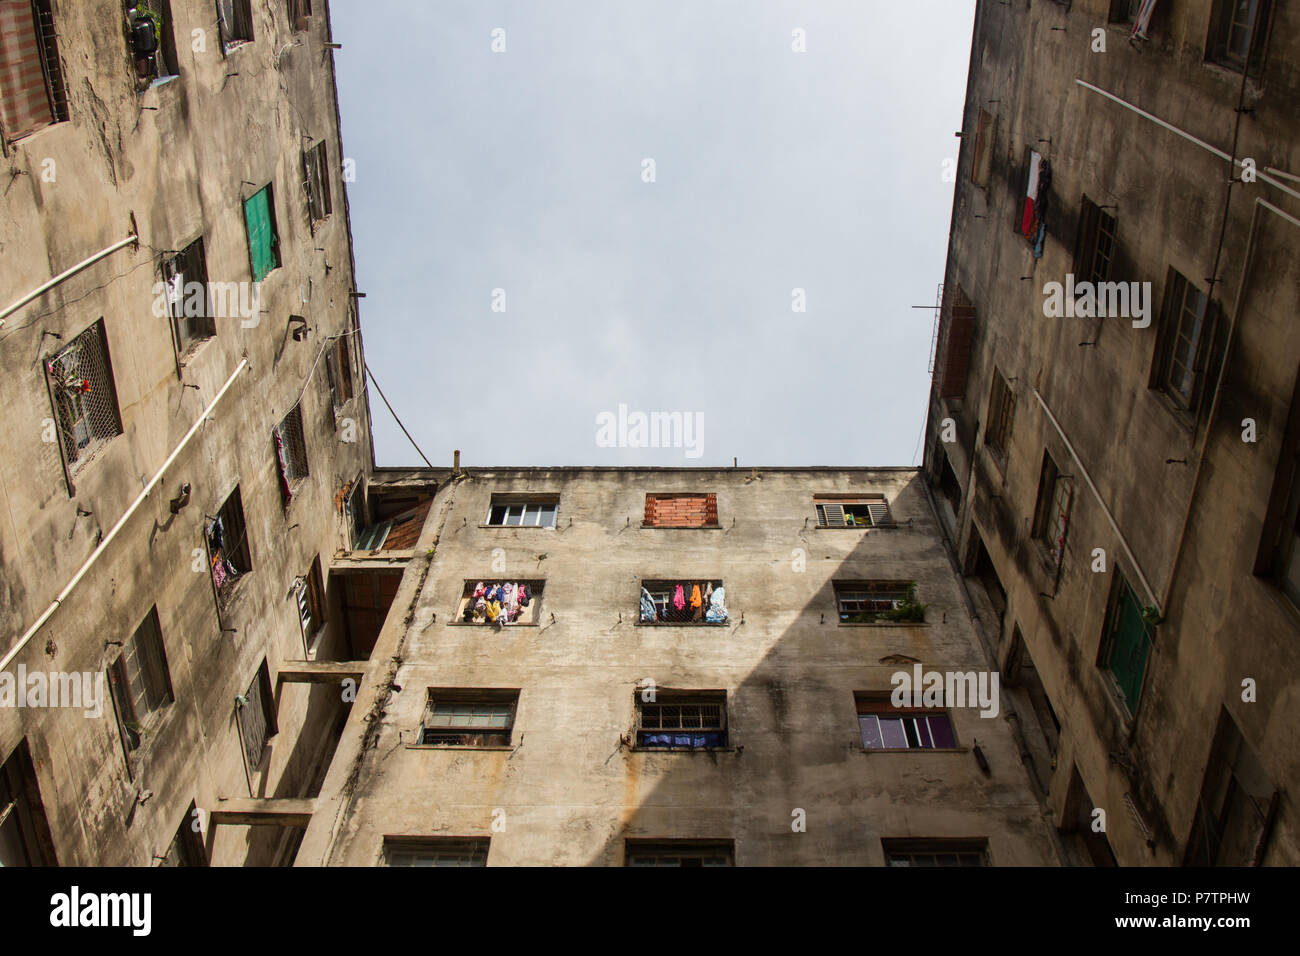 Worn building used as home by poor people Stock Photo - Alamy